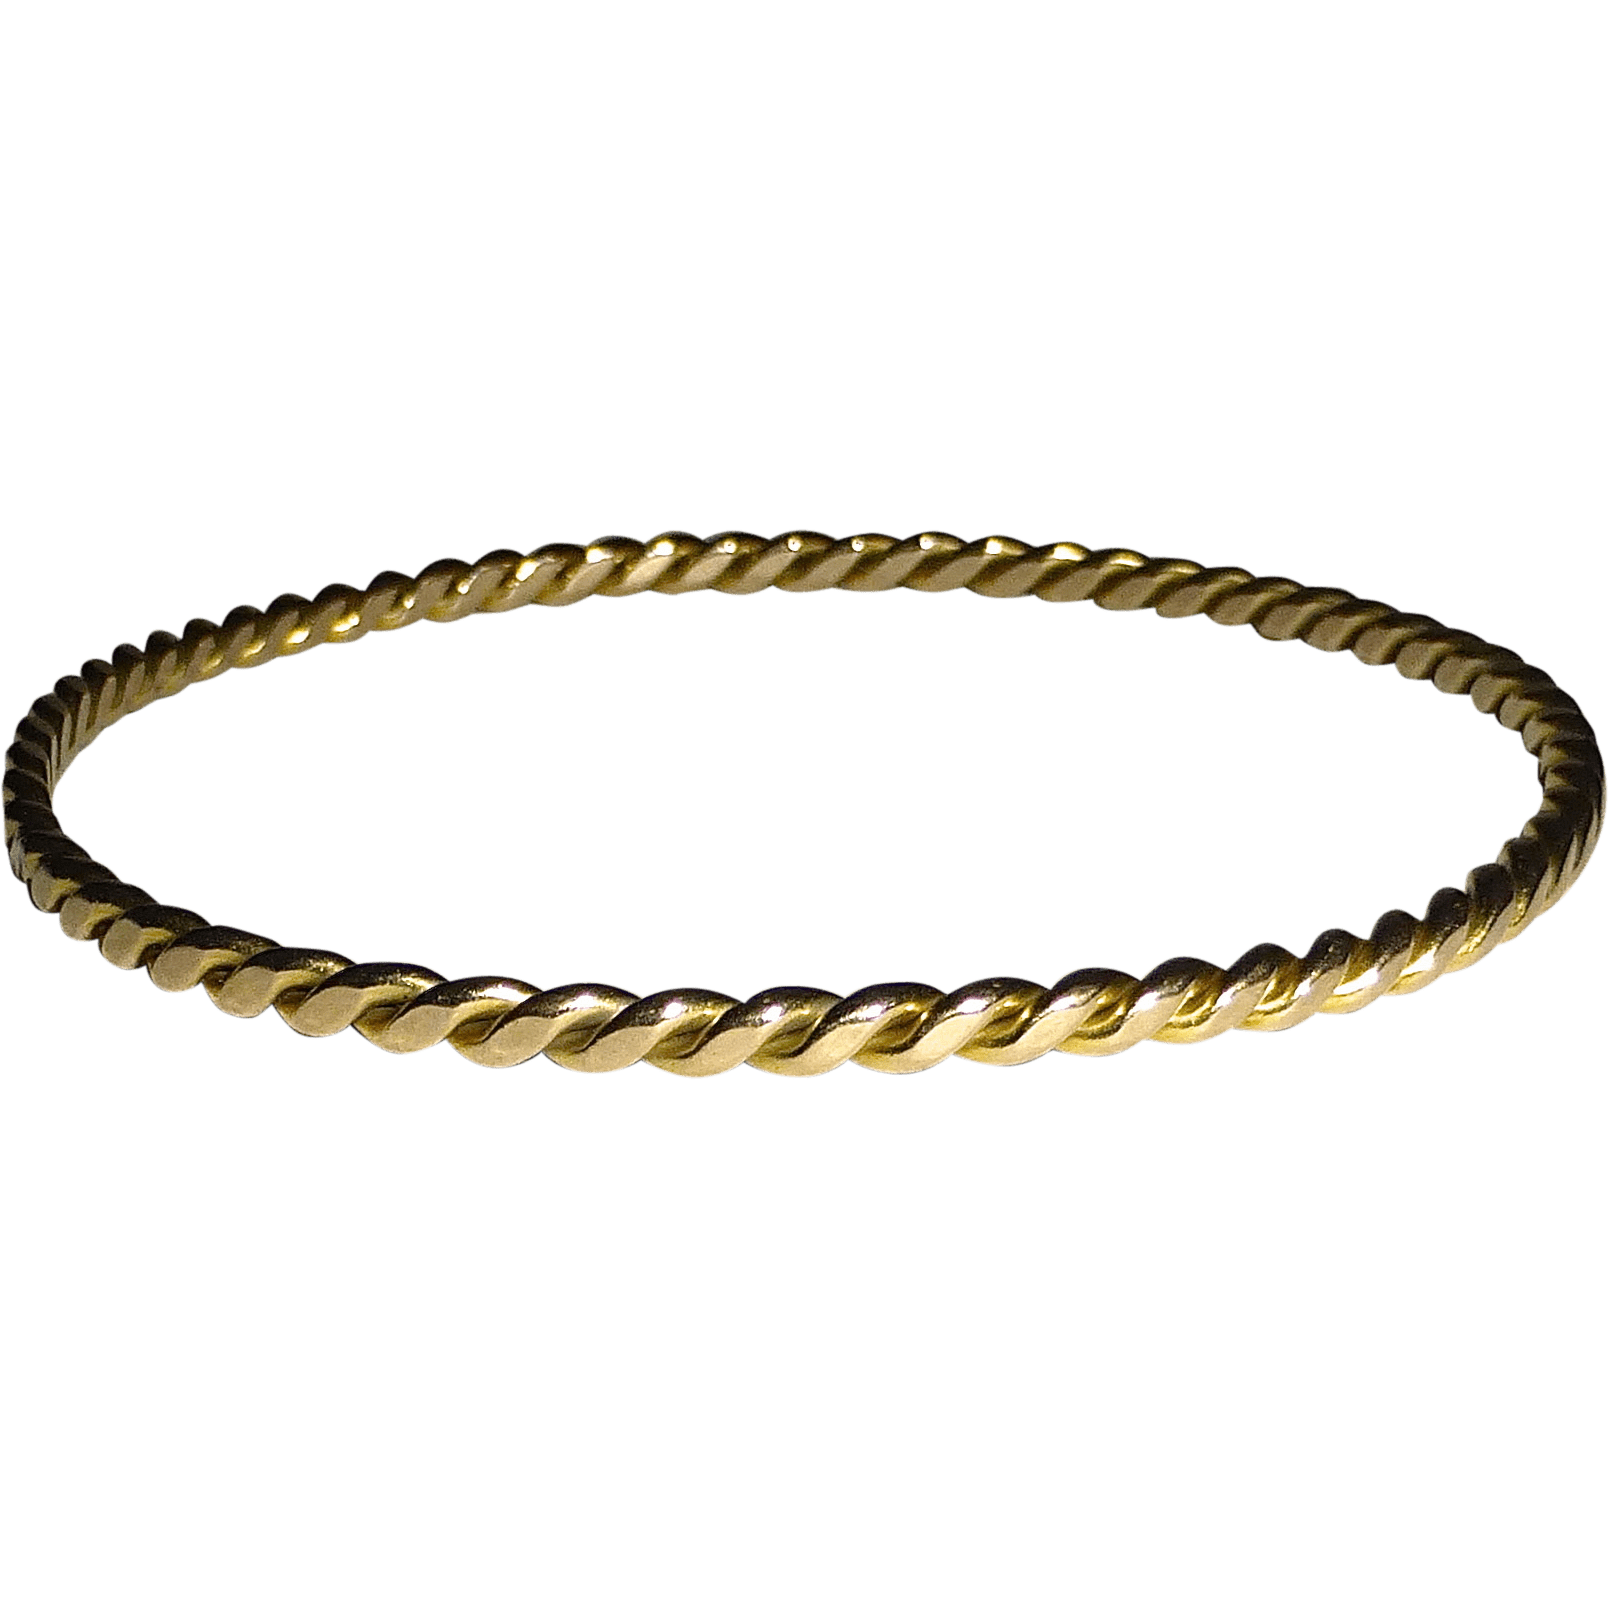 14k Yellow Gold Twisted Wire Bangle Bracelet From